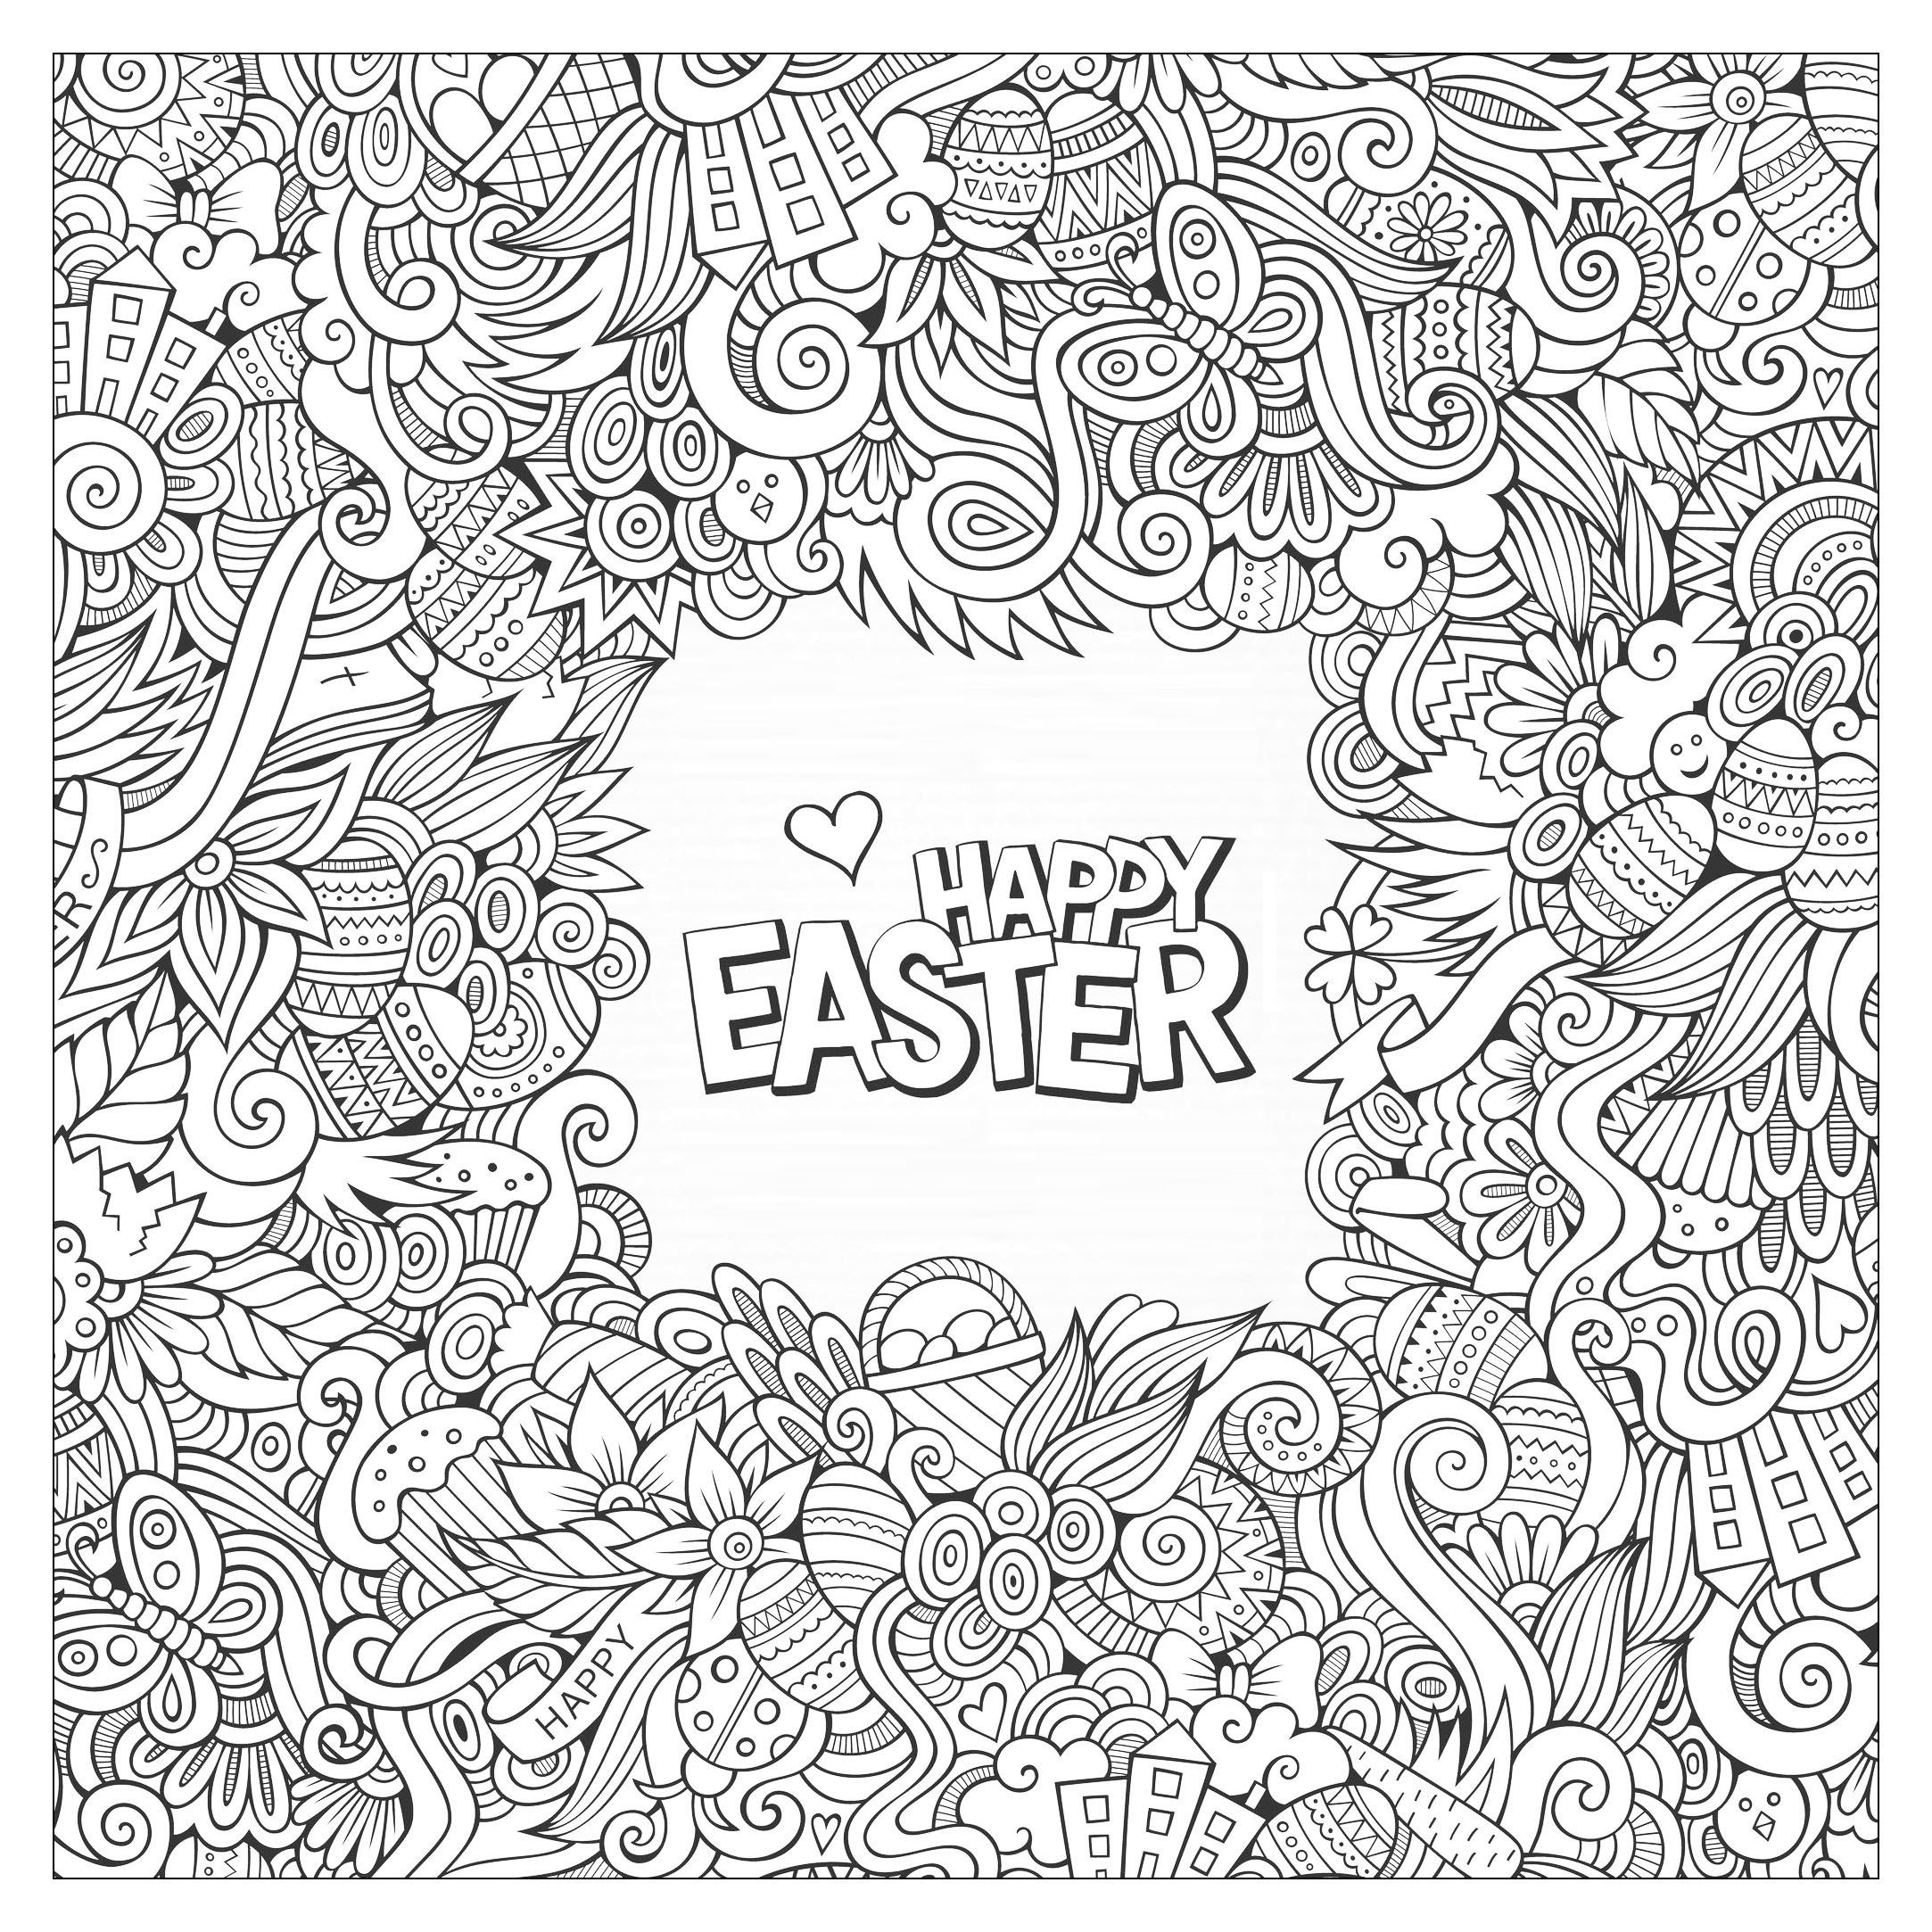 Easter Greeting Card To Print And Color For Kids And Adultsfrom